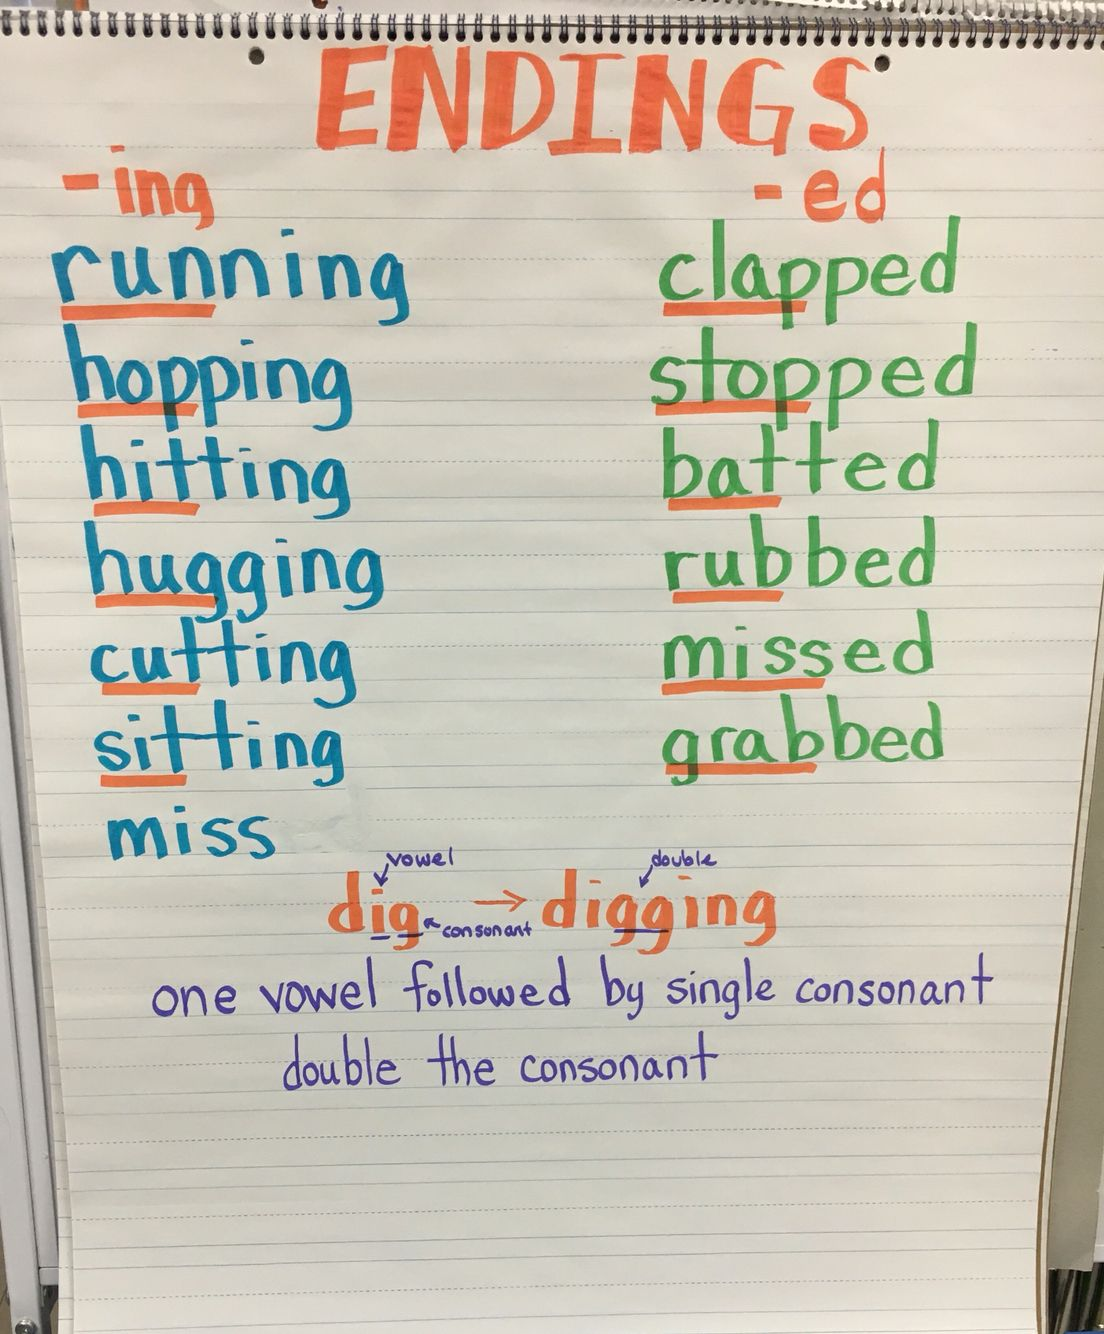 medium resolution of Ed and -ing endings- suffixes- when to double the consonant anchor chart    Anchor charts